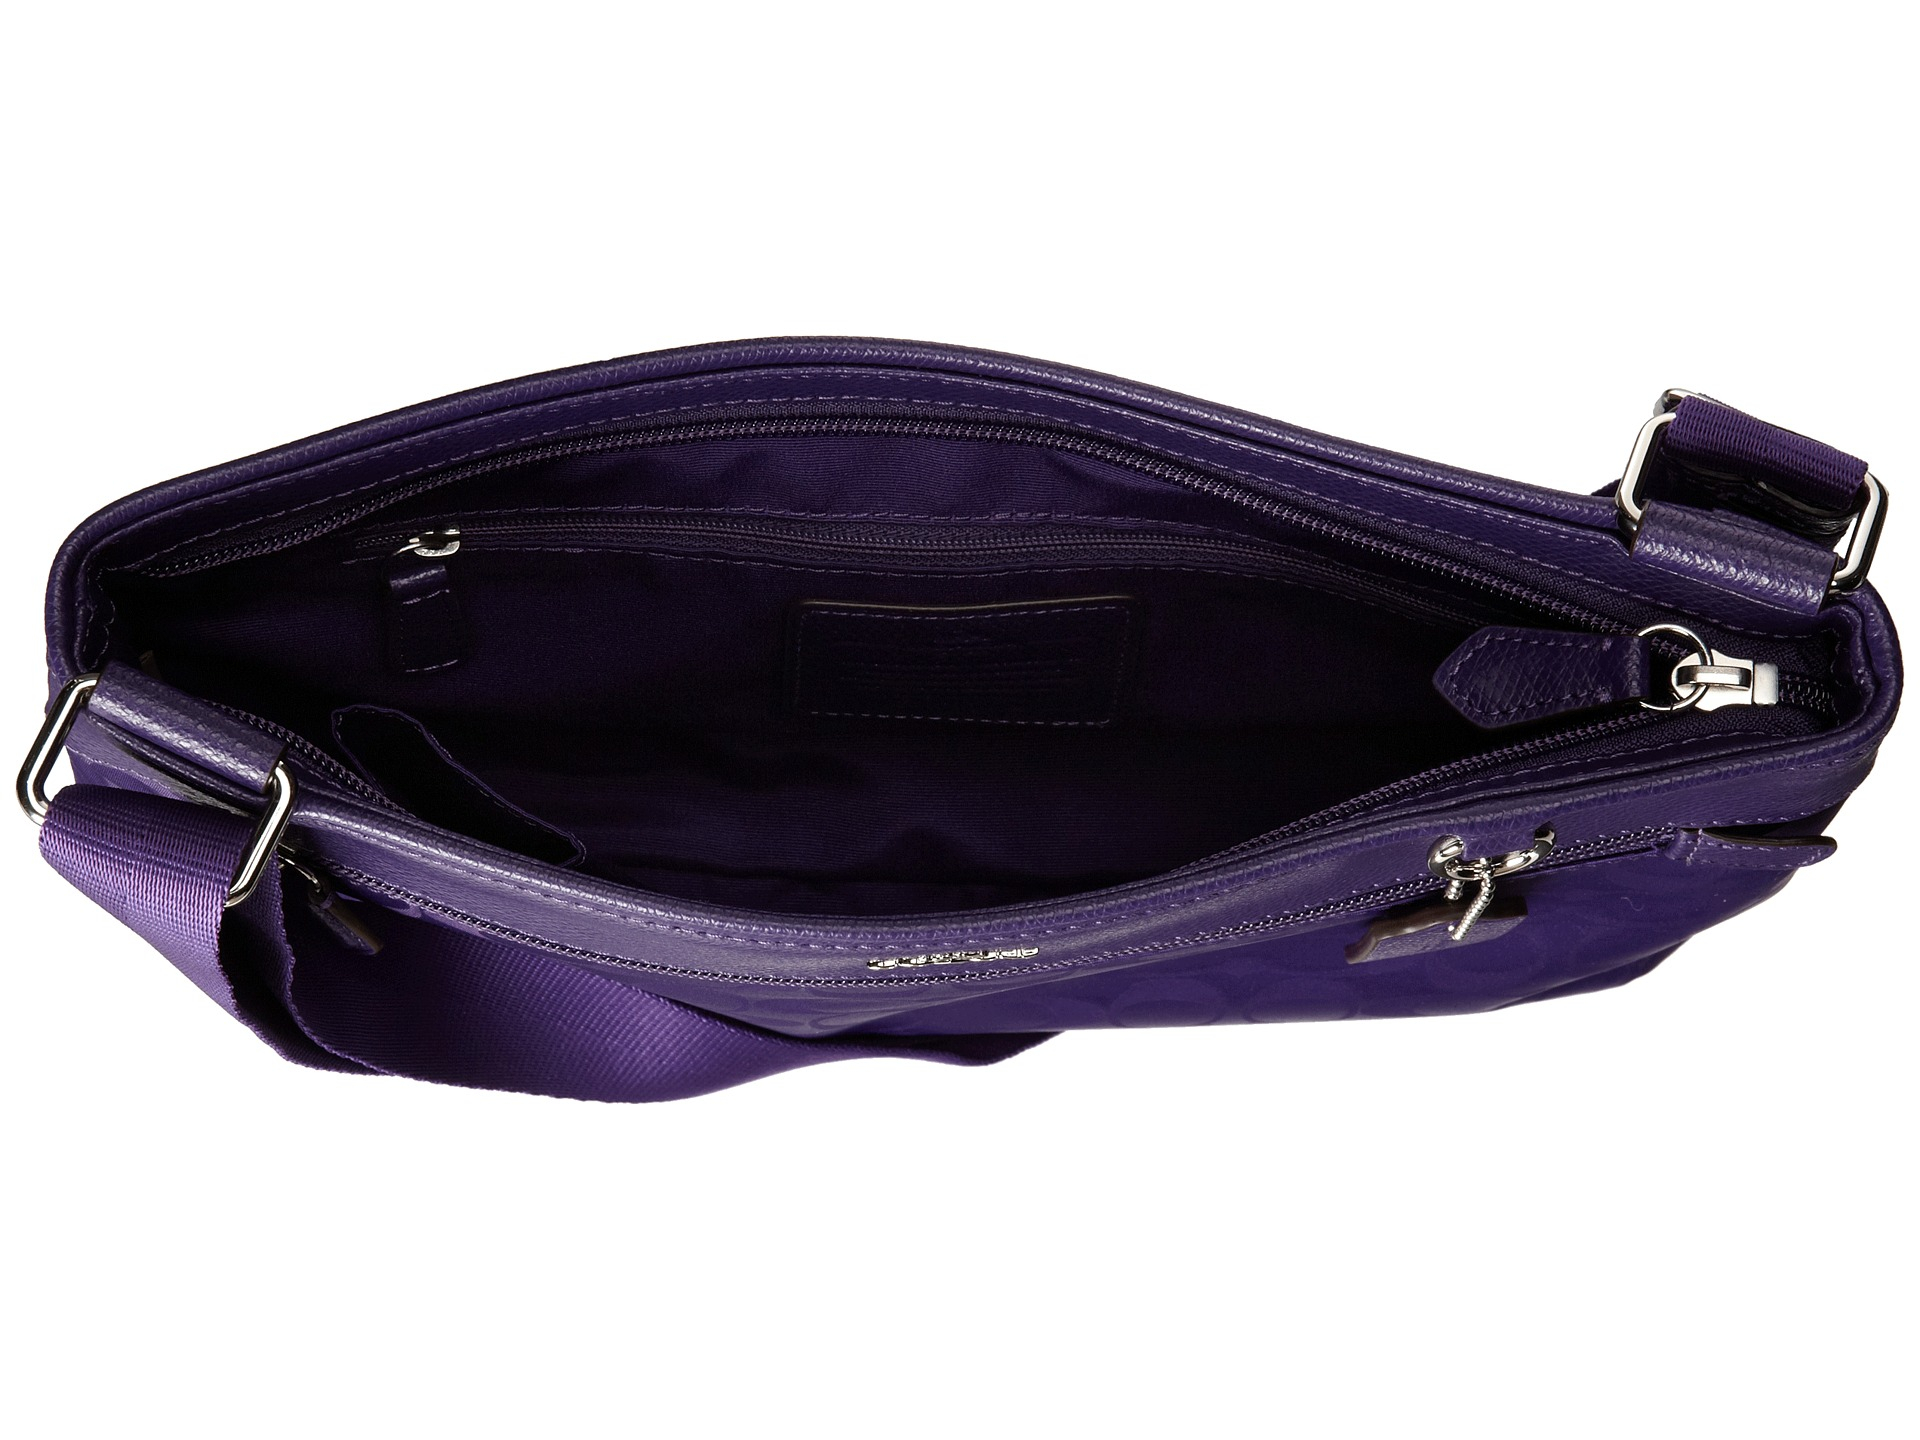 ... official store lyst coach signature nylon spencer crossbody in purple  6e619 a0404 cecd3f1c73524